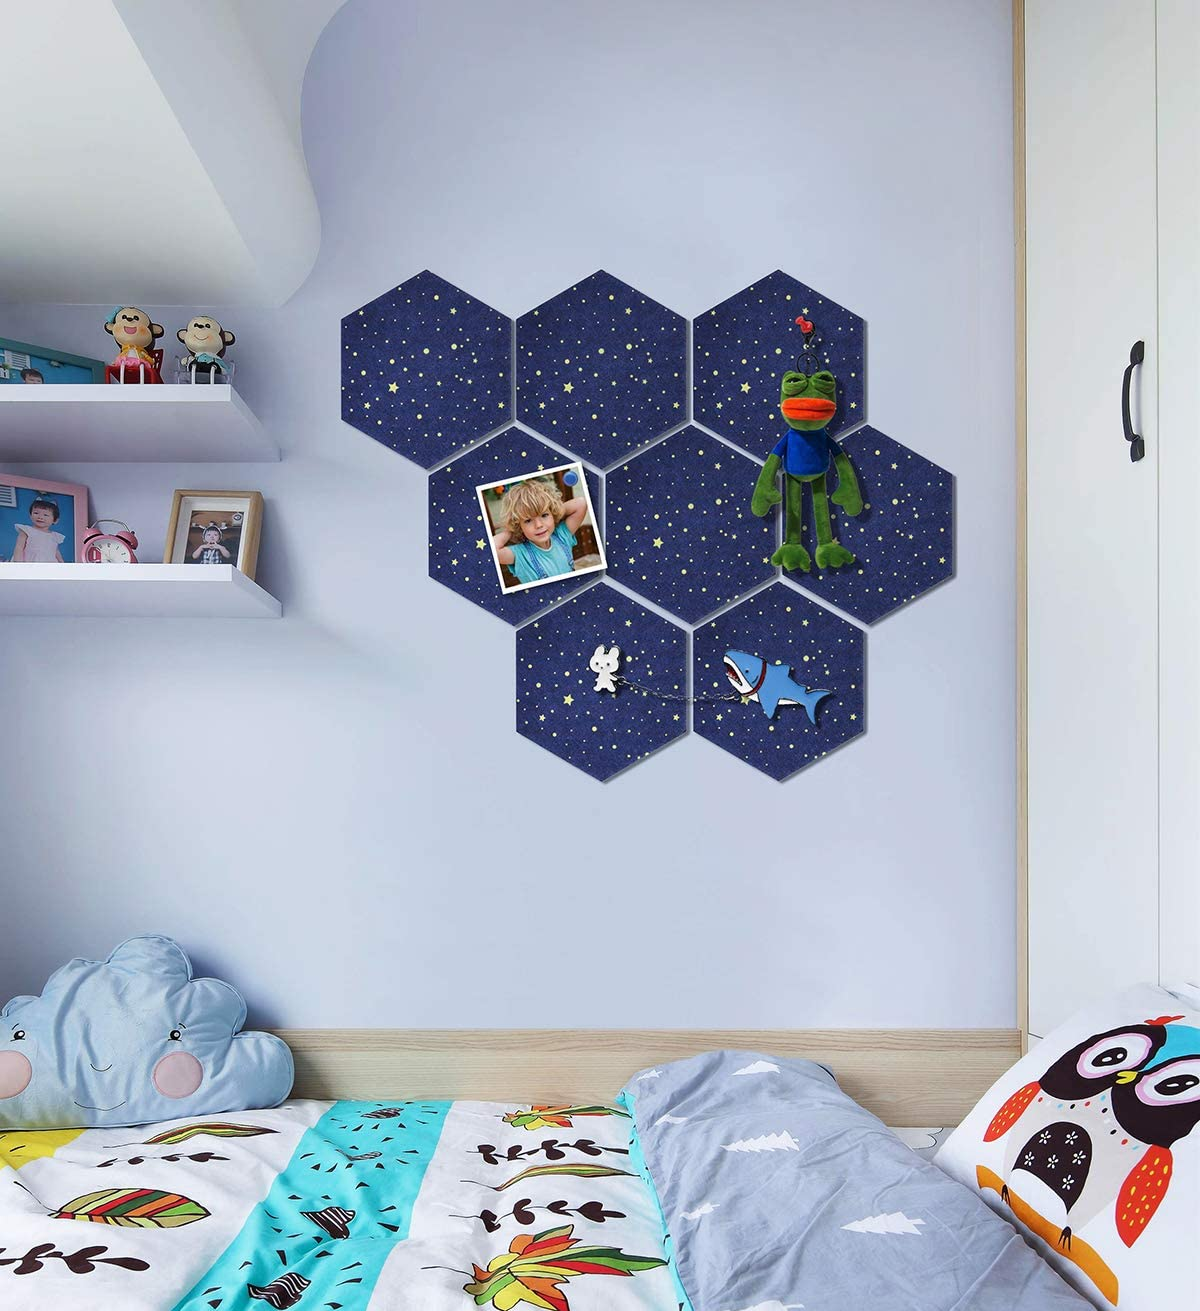 Uoisaiko Felt Hexagon Cork Board with 20 Pins Cork Pin Board Wall Tiles for Photos Memos Pack of 8 Self Adhesive Notice Boards for Home Office Kitchen